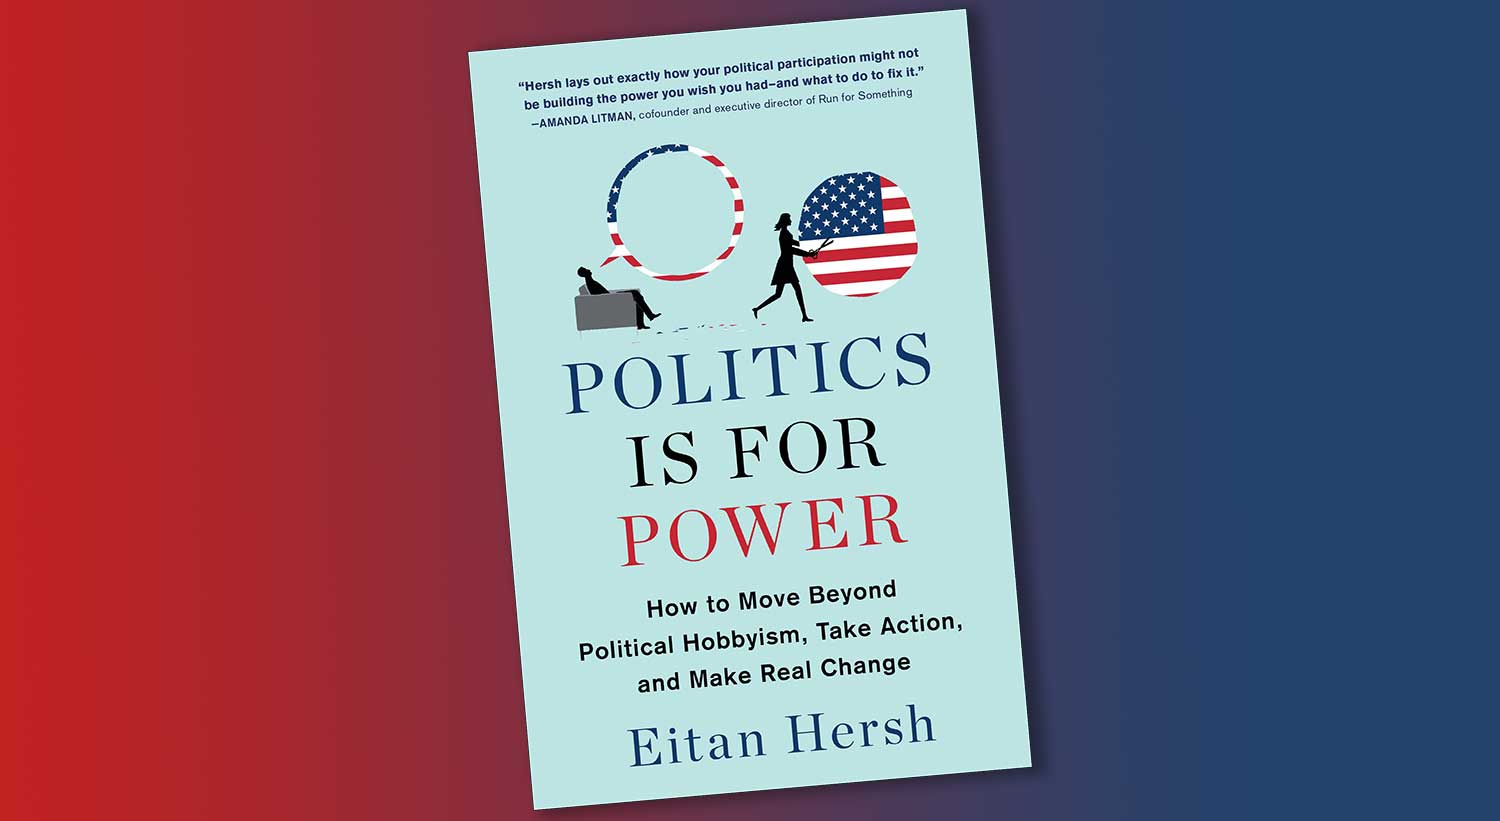 Politics is for Power book cover